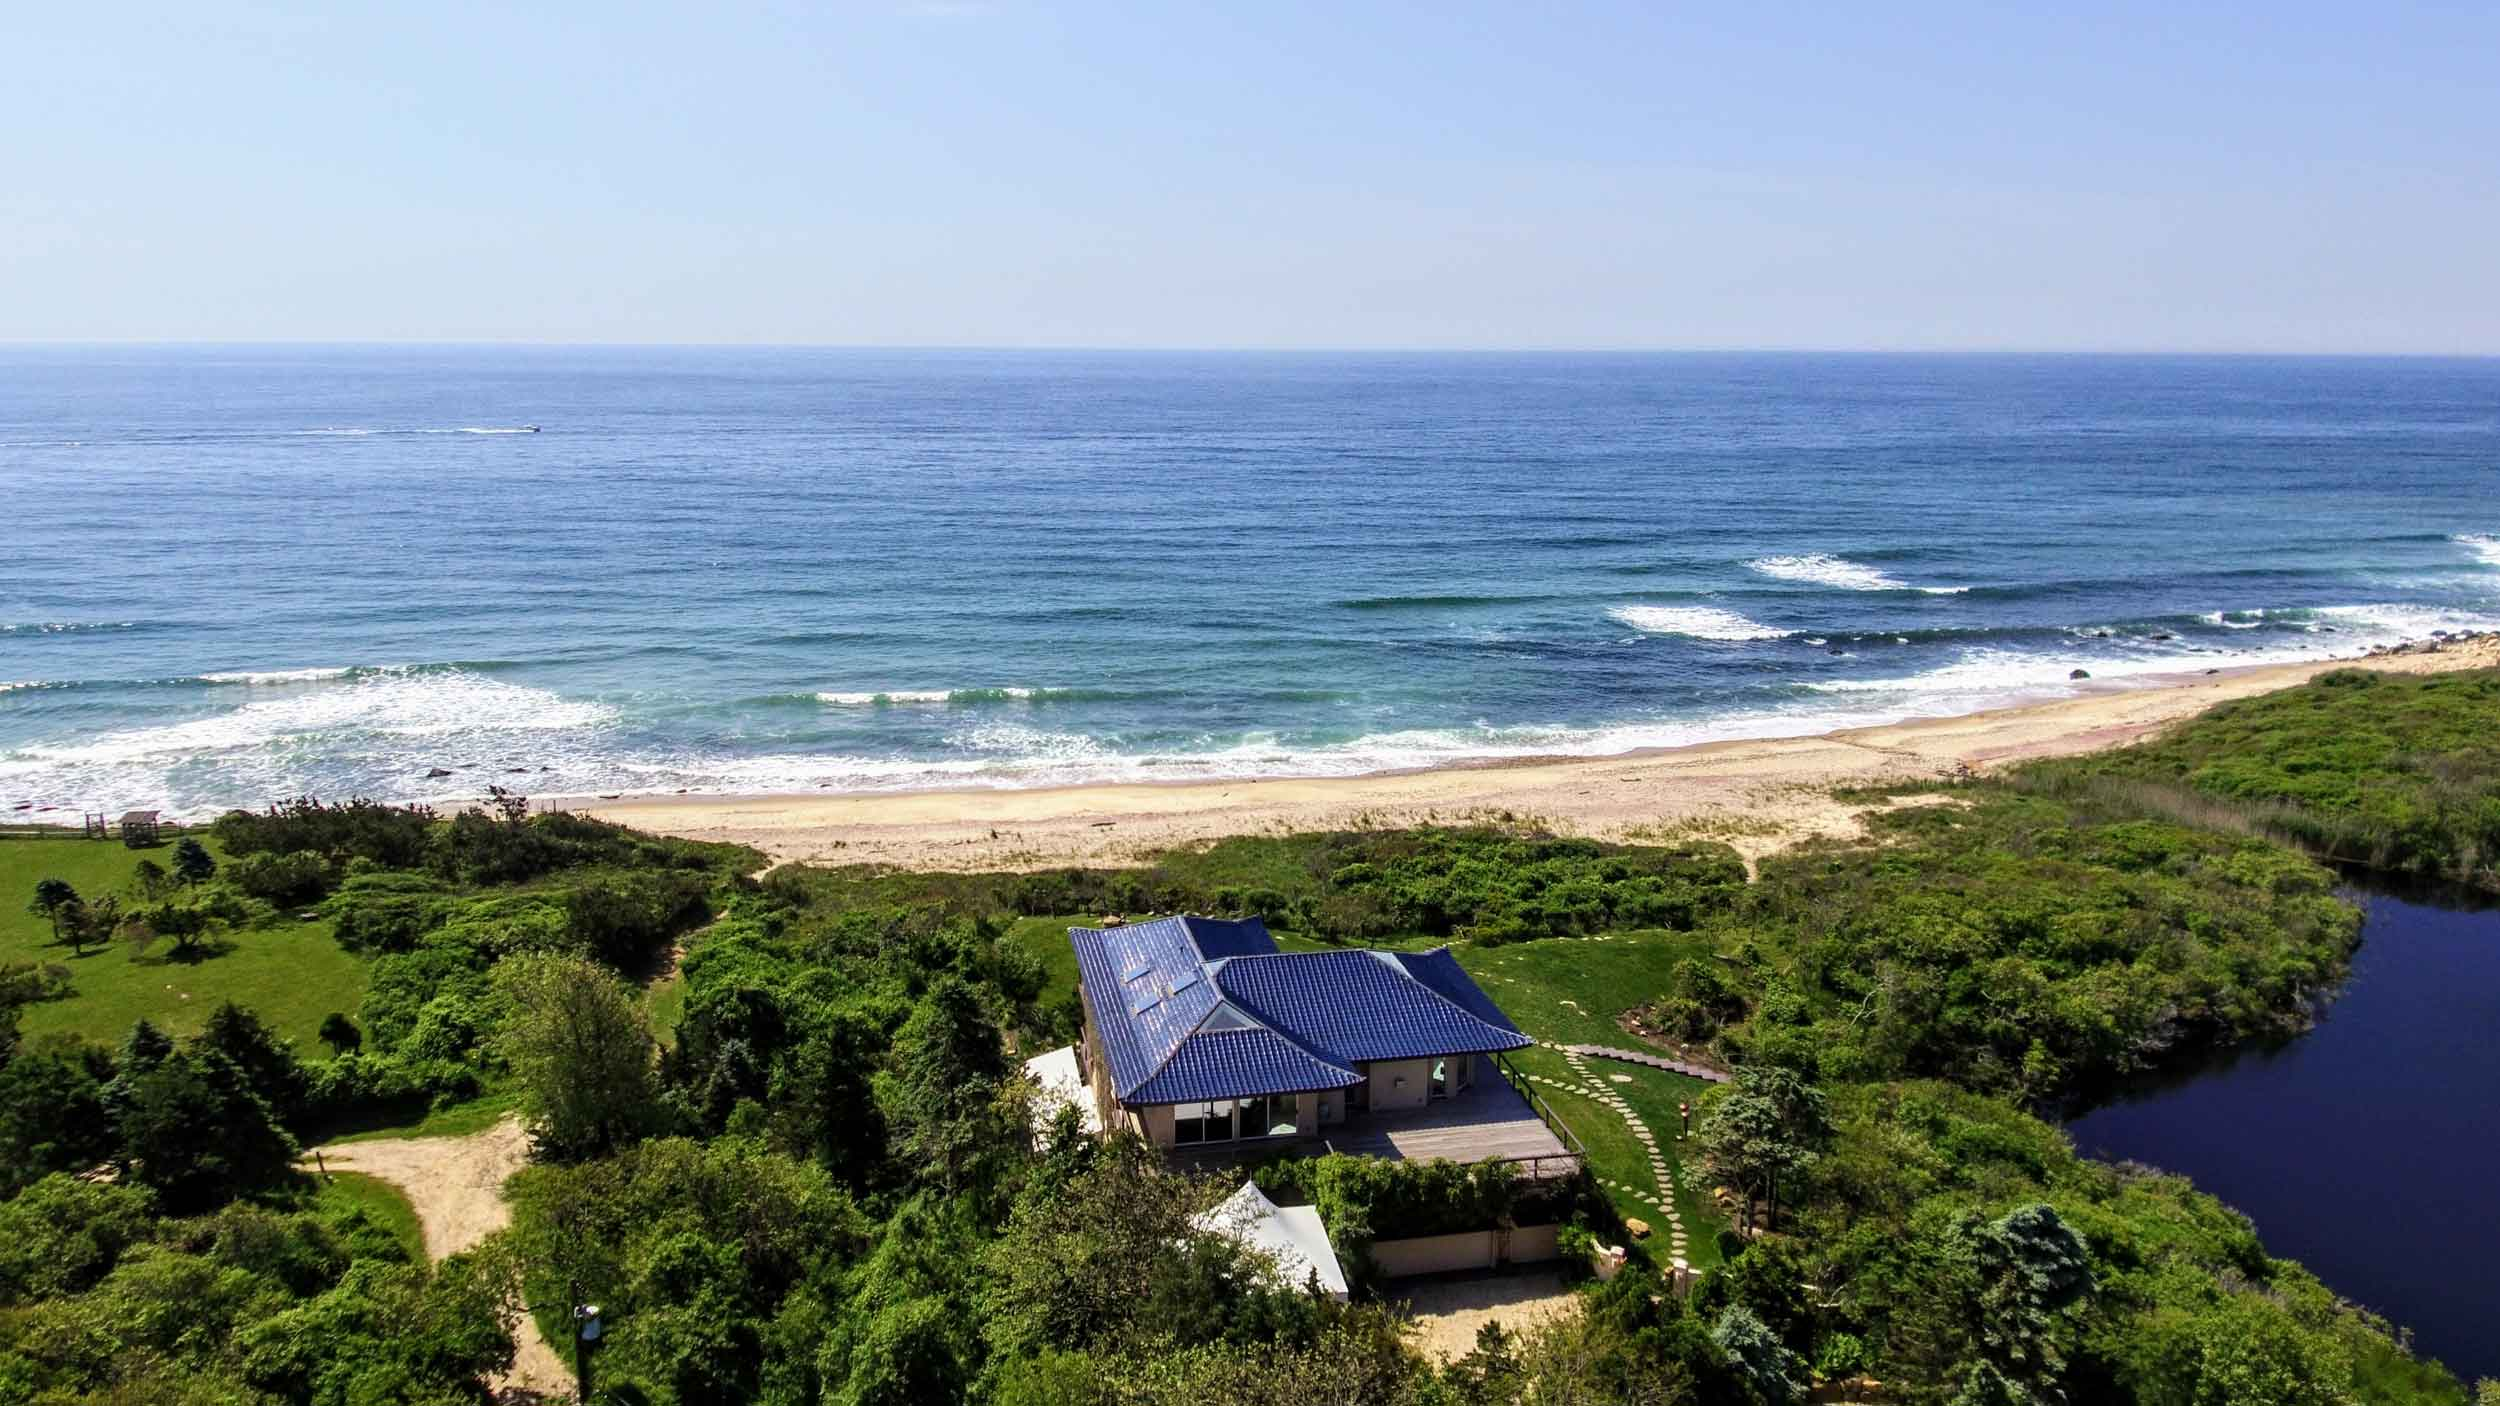 The surf in Montauk has been likened to the waves in Australia; the town itself has been compared to Malibu for its laid-back but elegant style.